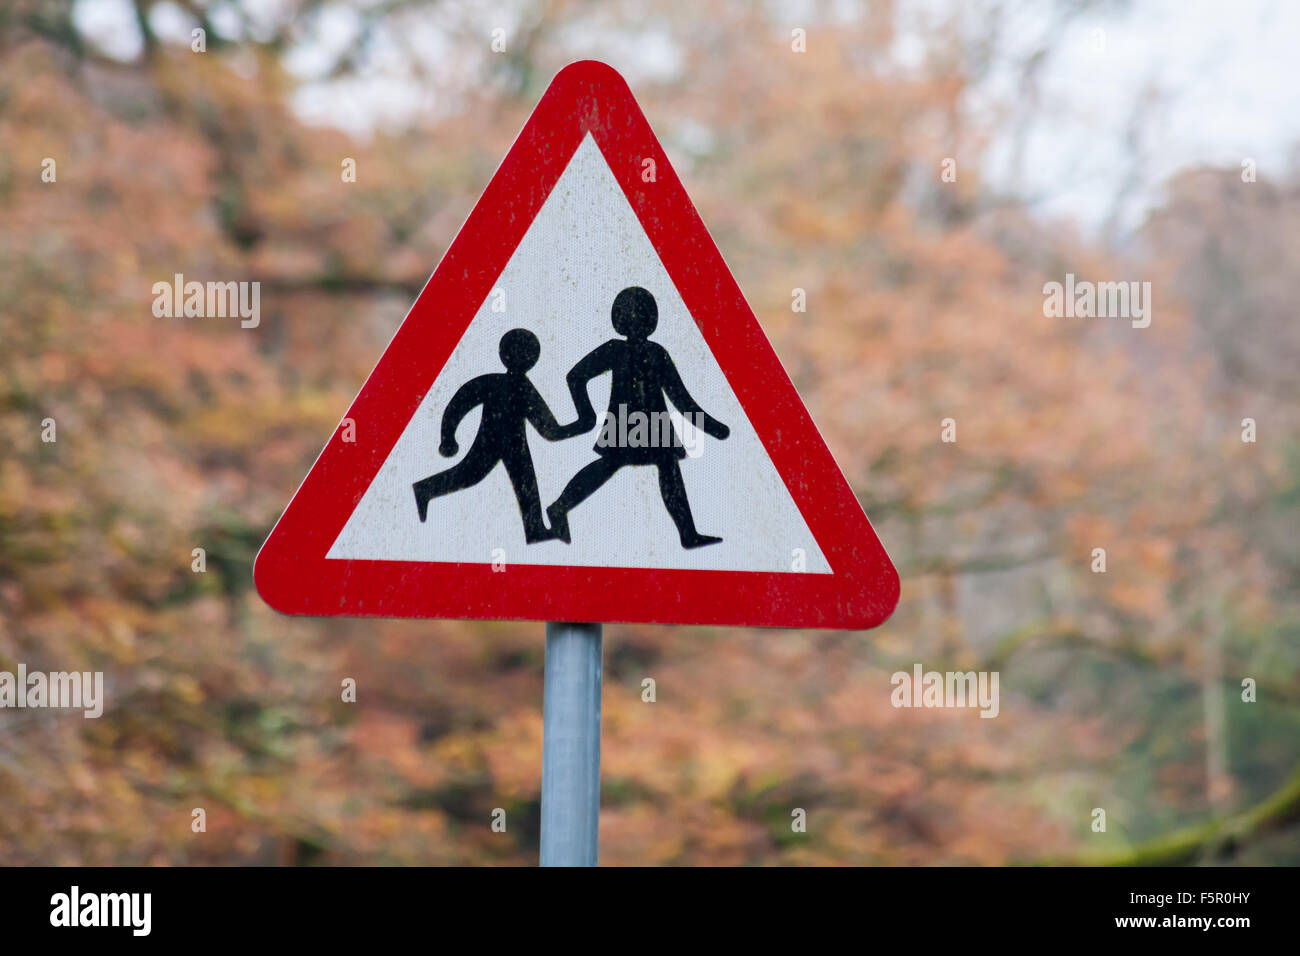 Children Crossing Road Sign High Resolution Stock ...